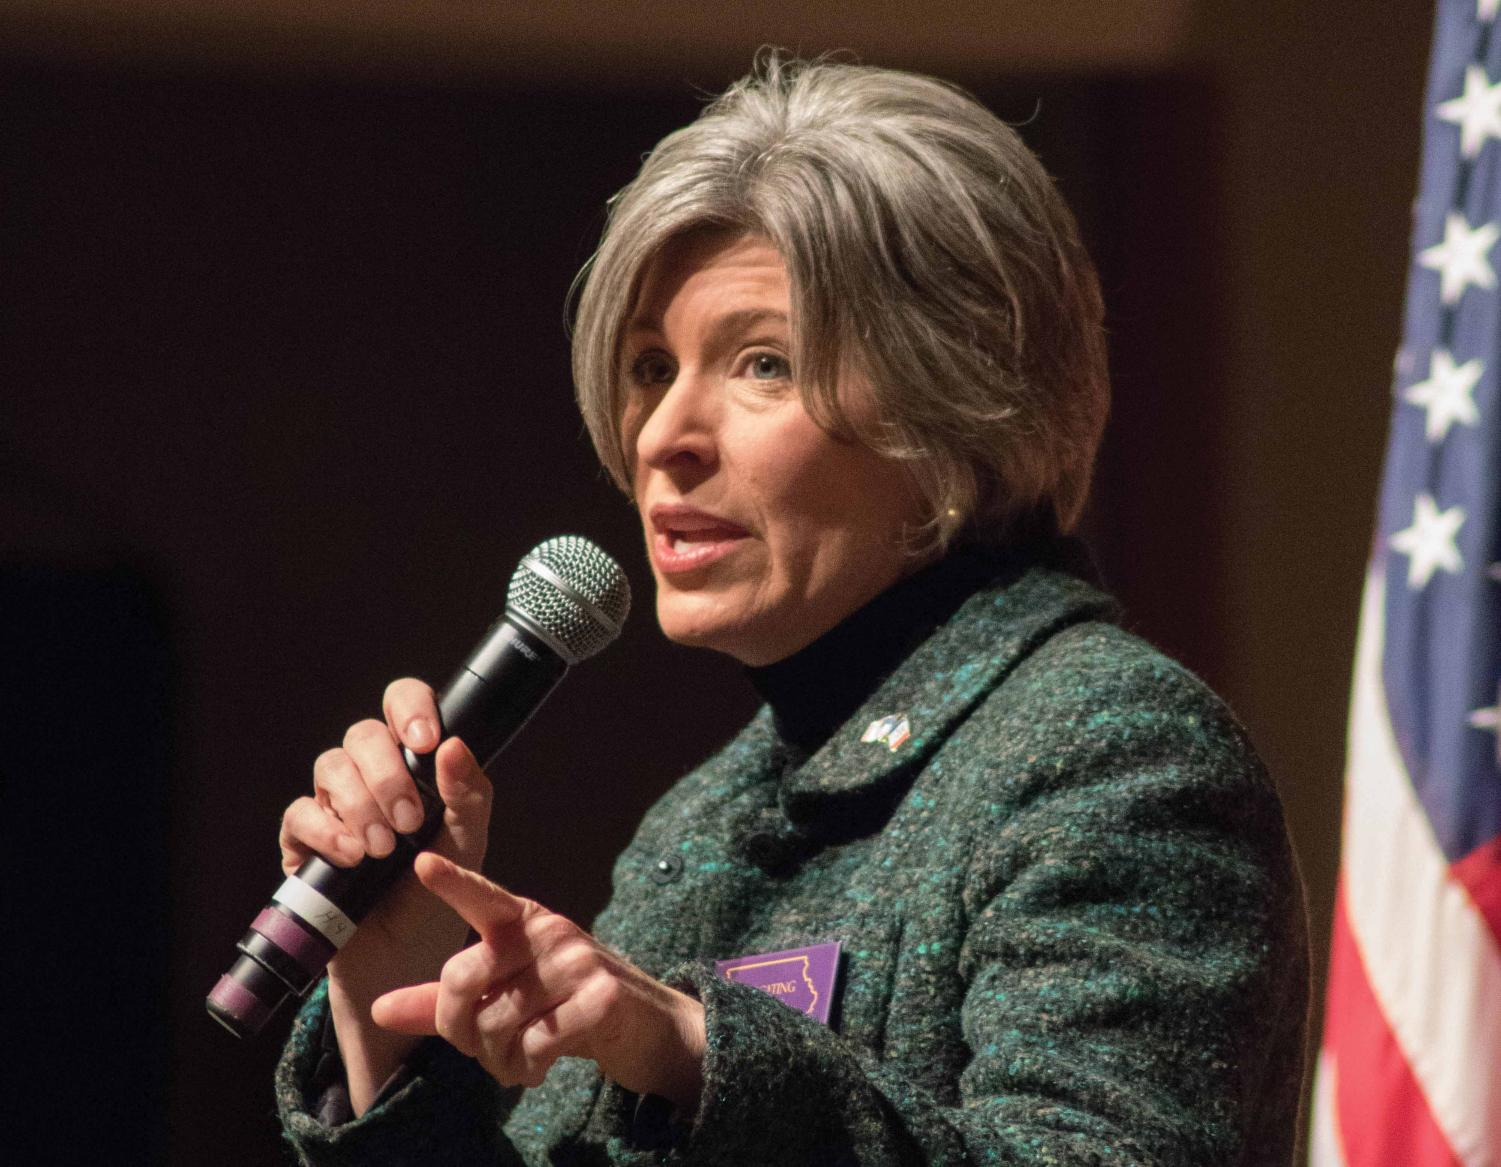 Joni Ernst held a town hall on Jan. 23 at 8 a.m. as a part of her 99-county tour.